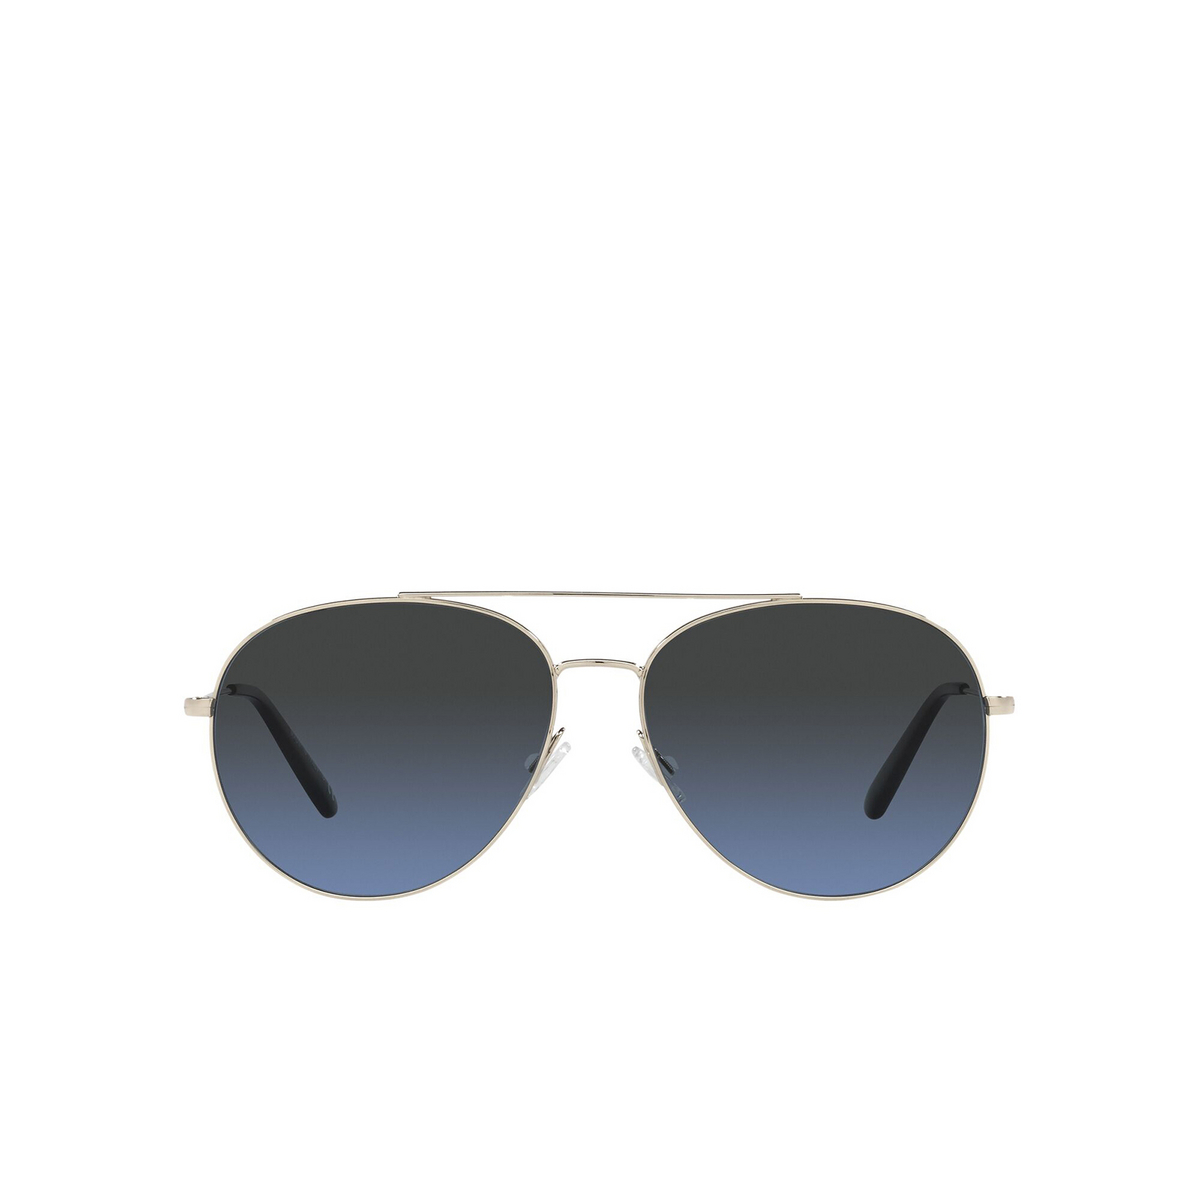 Oliver Peoples® Aviator Sunglasses: Airdale OV1286S color Soft Gold 5035P4 - front view.